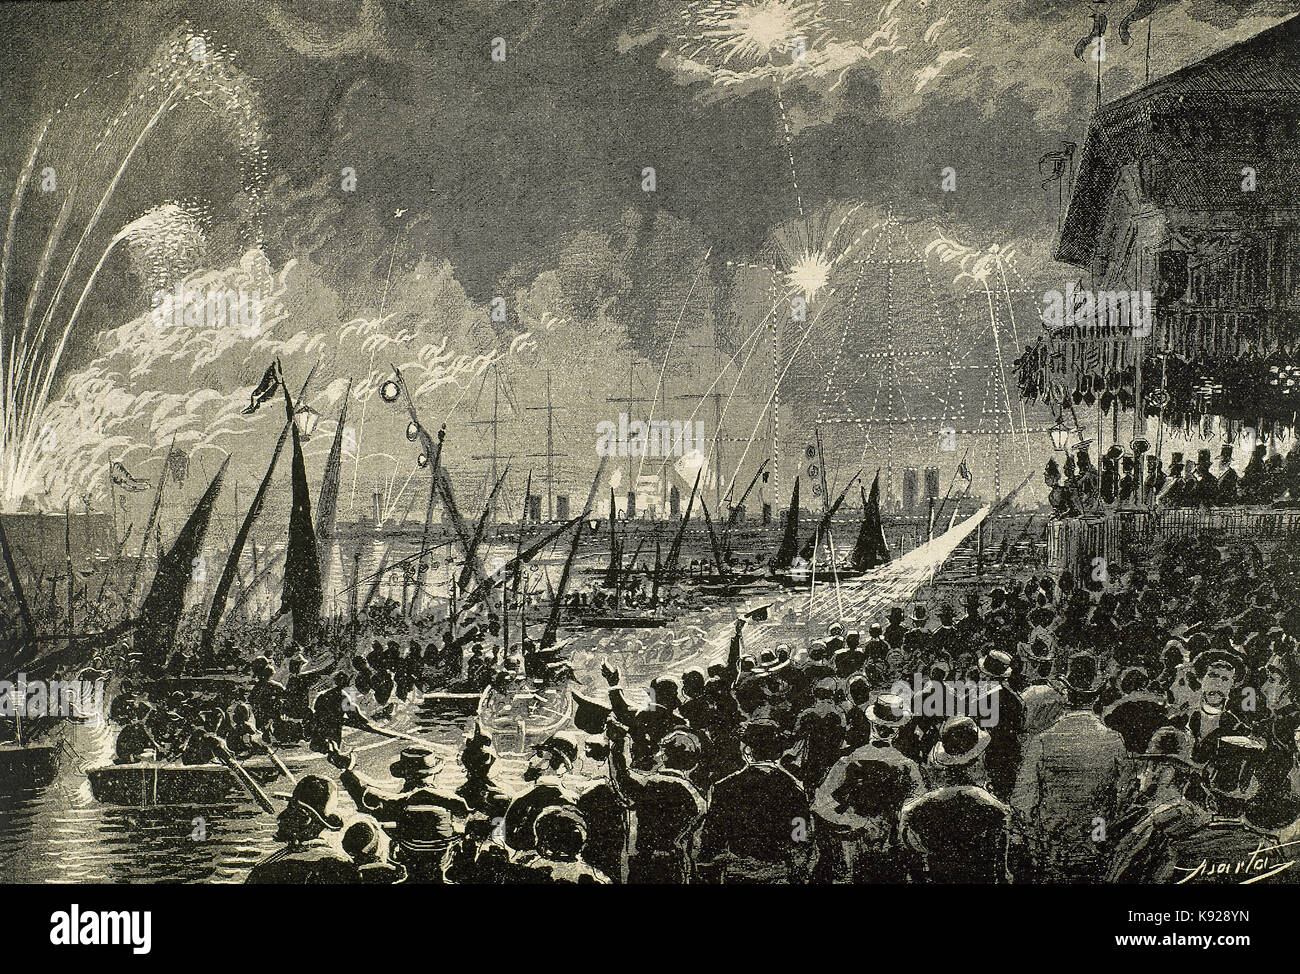 Spain. Catalonia. 1888 Barcelona Universal Exposition. Audience at the sea spectacle held during the town's - Stock Image